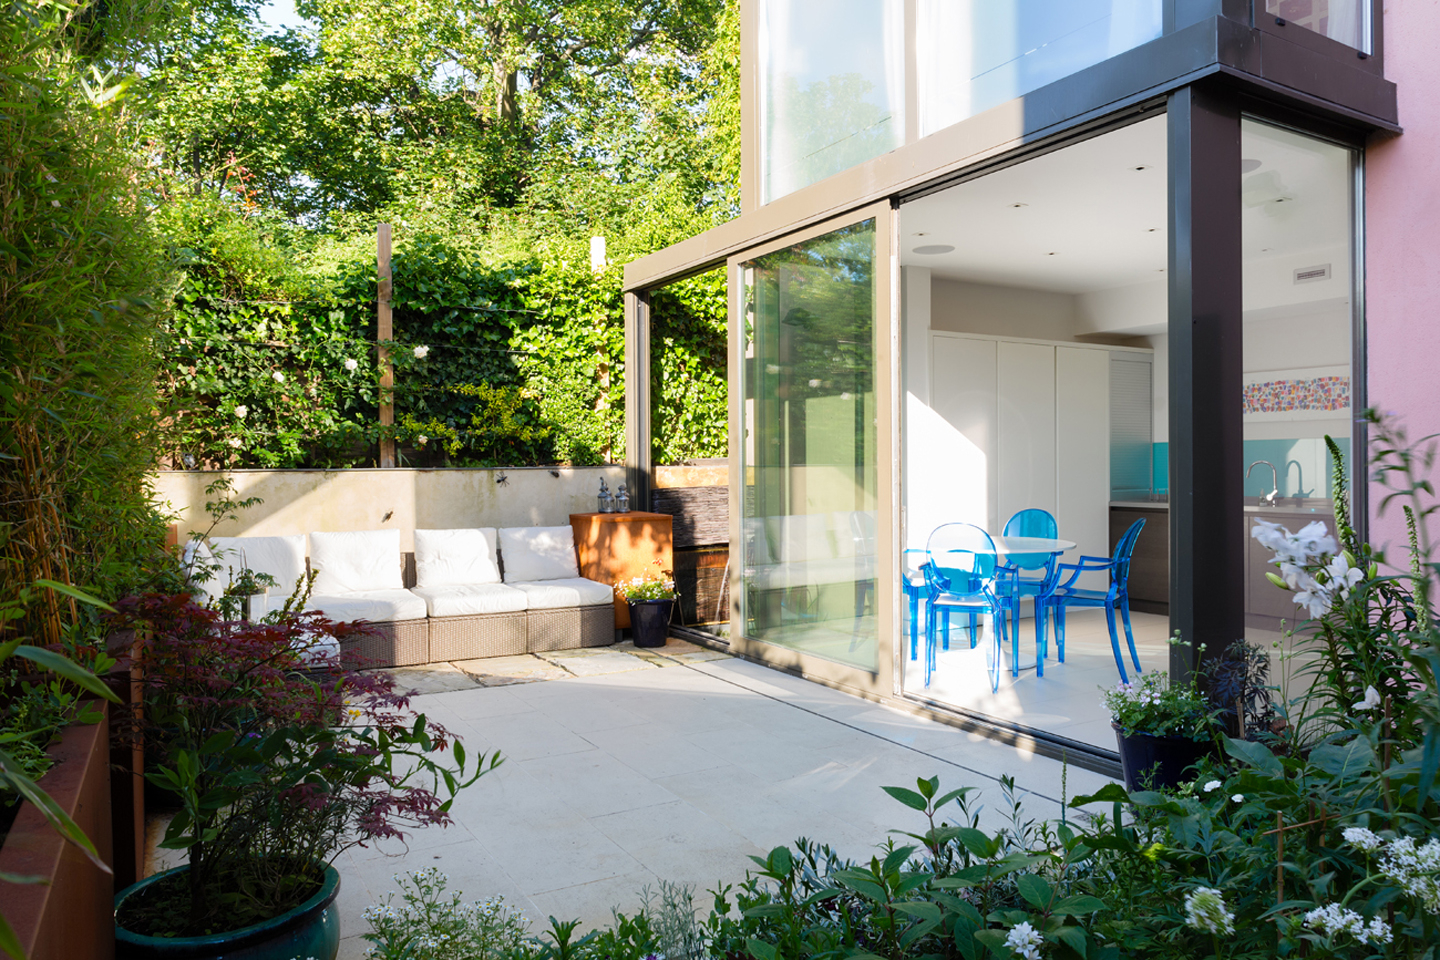 sustainable design and energy efficiency